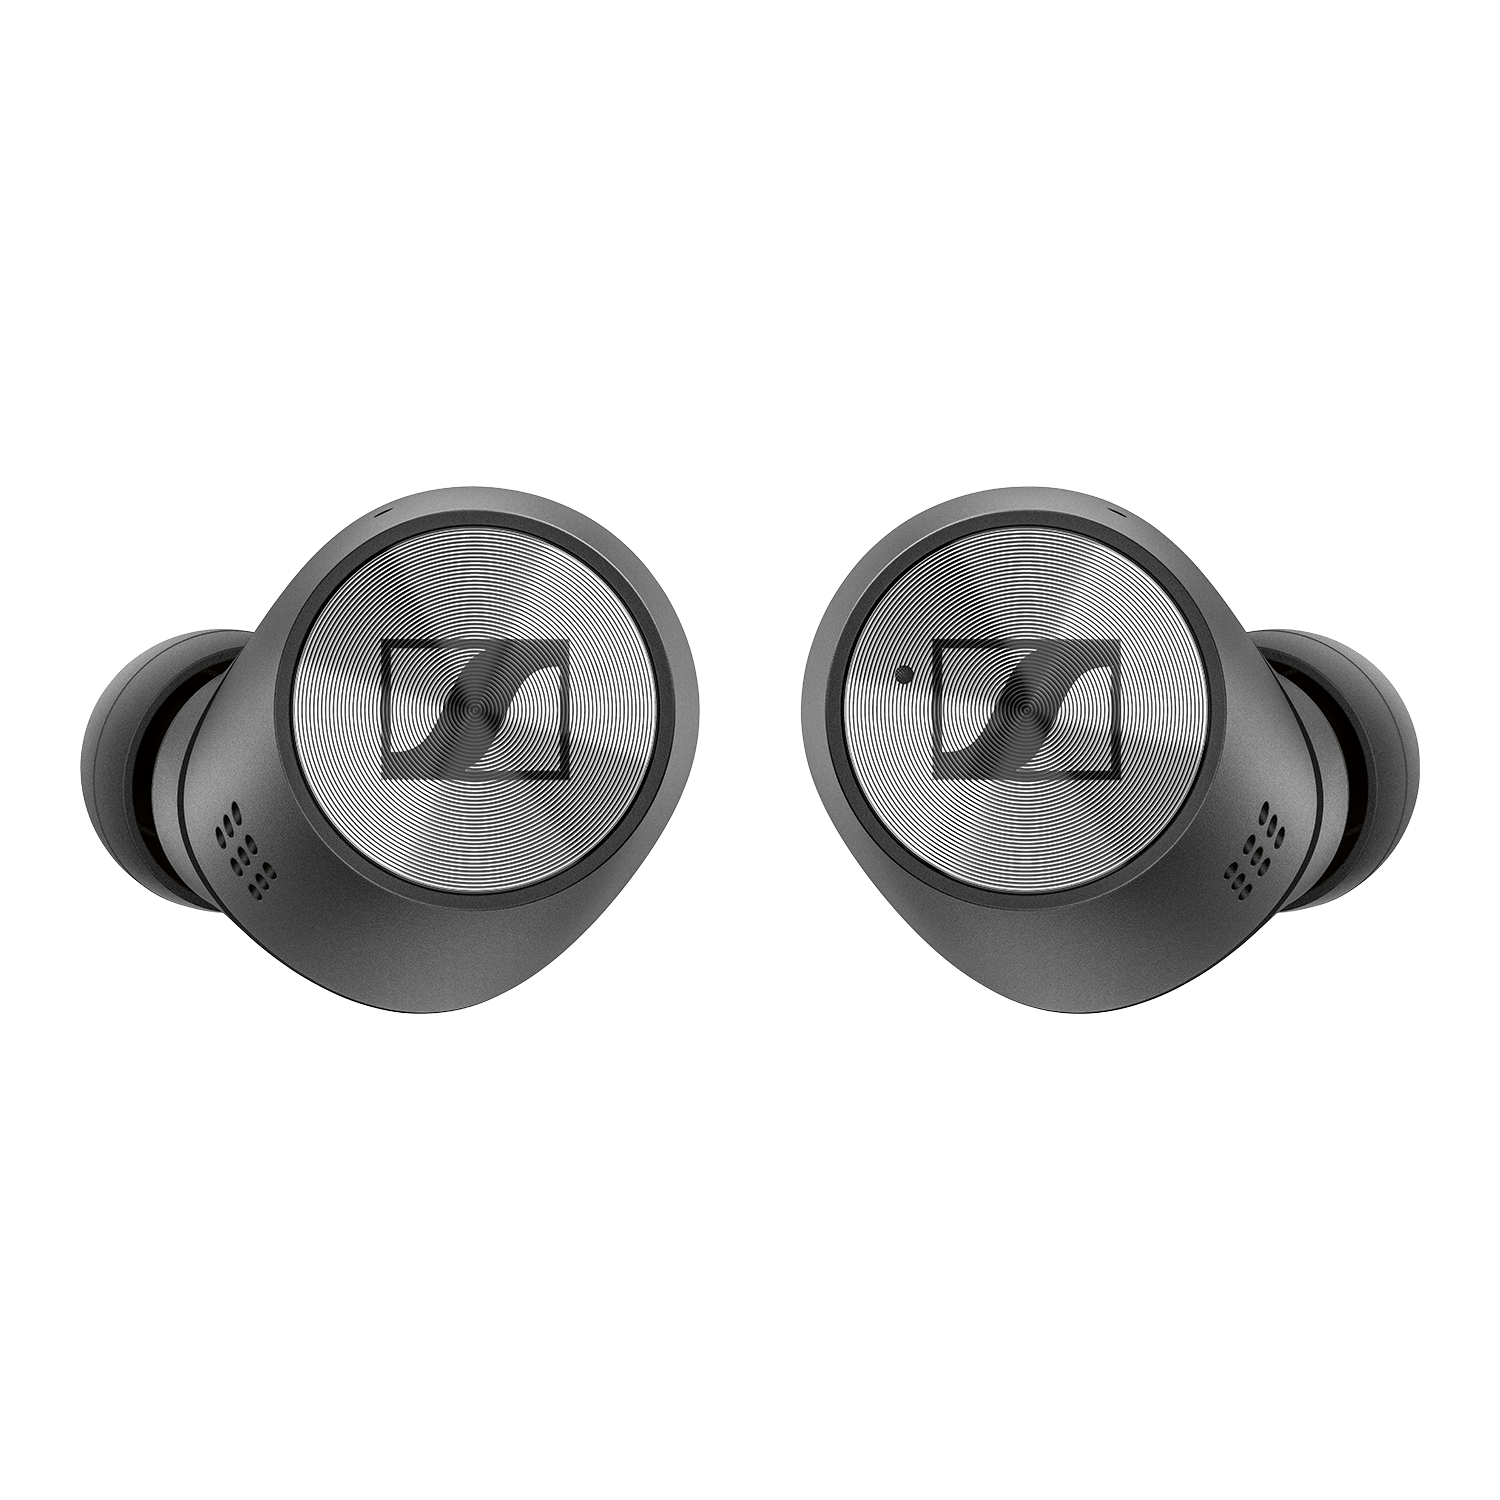 Sennheiser MOMENTUM True Wireless 2 In-Ear-Kopfhörer, Schwarz